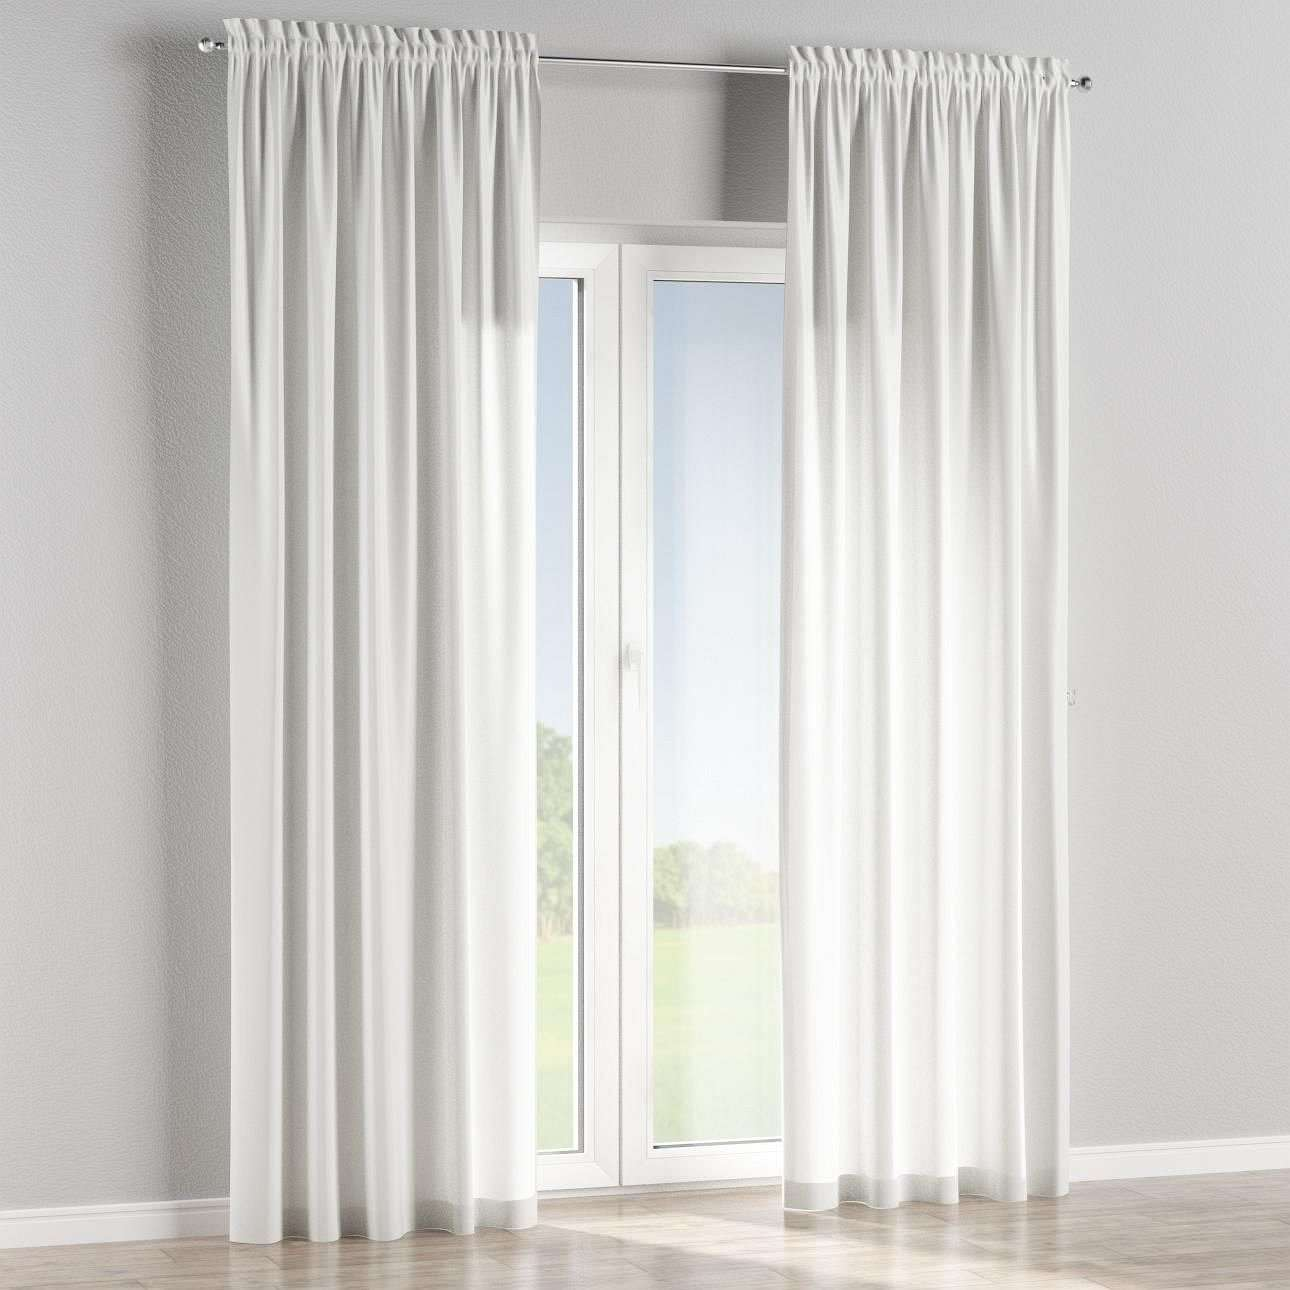 Slot and frill curtains in collection Bristol, fabric: 125-48